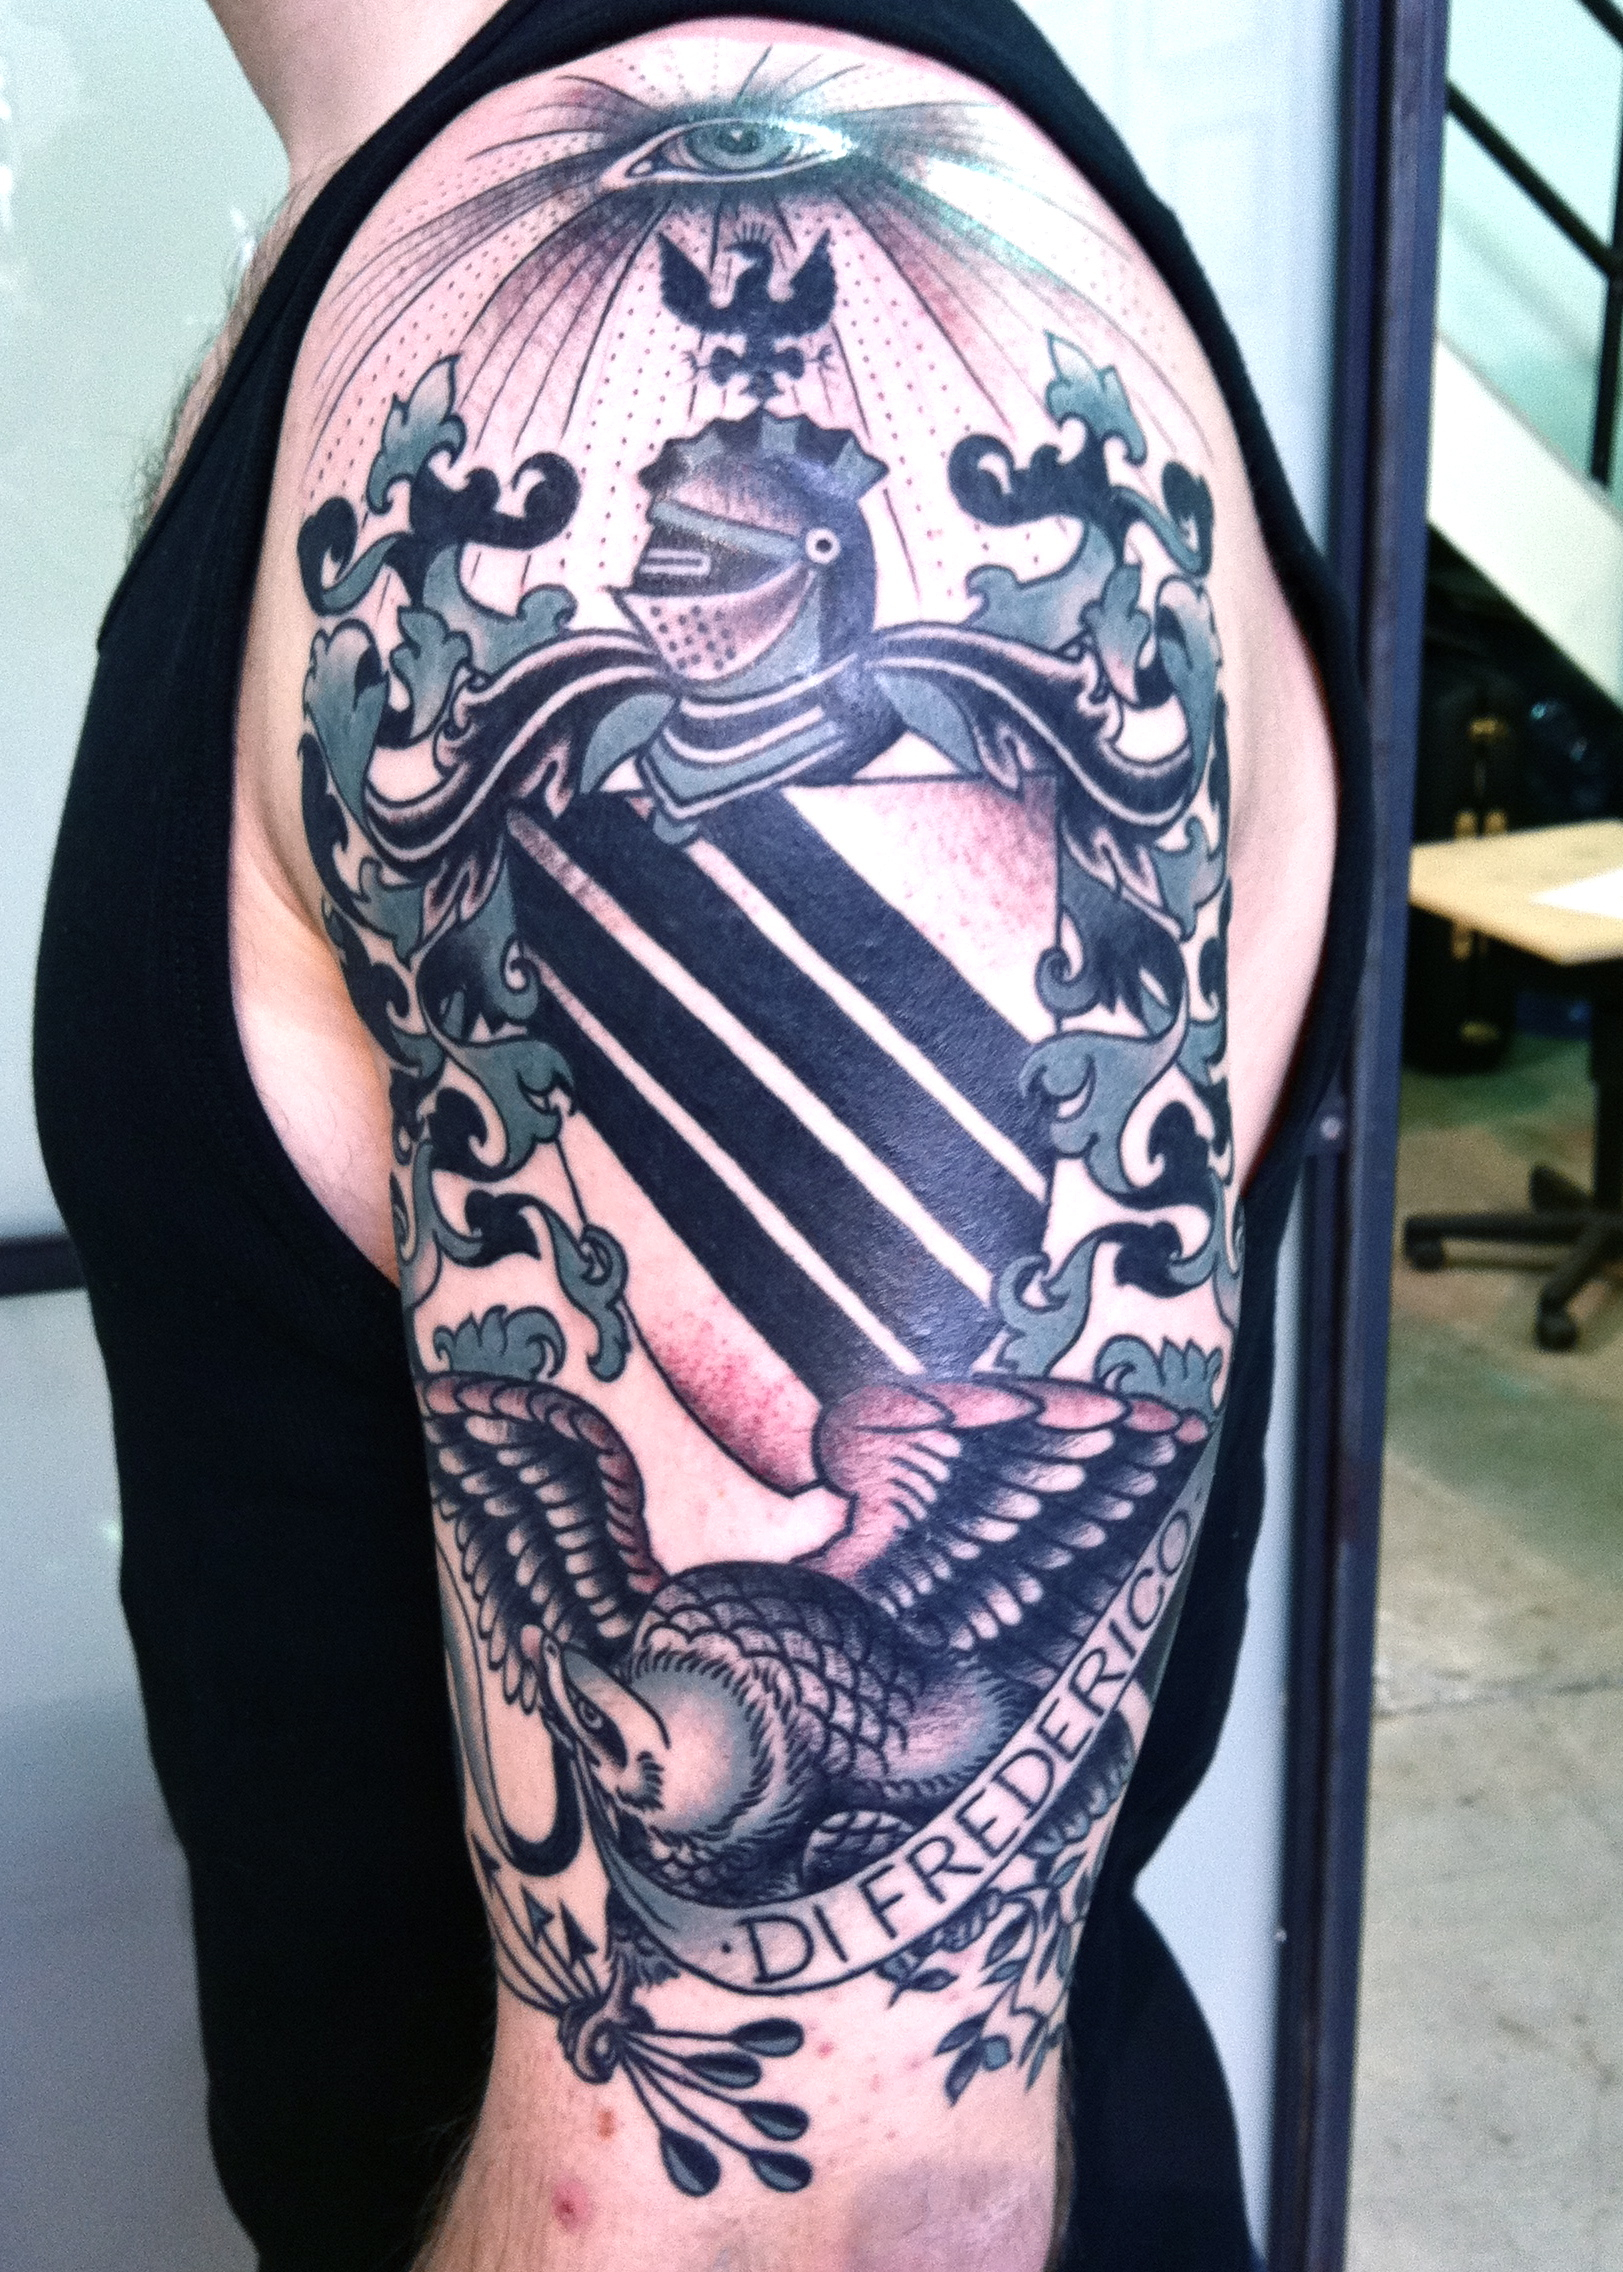 Coat Of Arms Tattoo Tattoos Virginia Elwood inside measurements 1623 X 2272